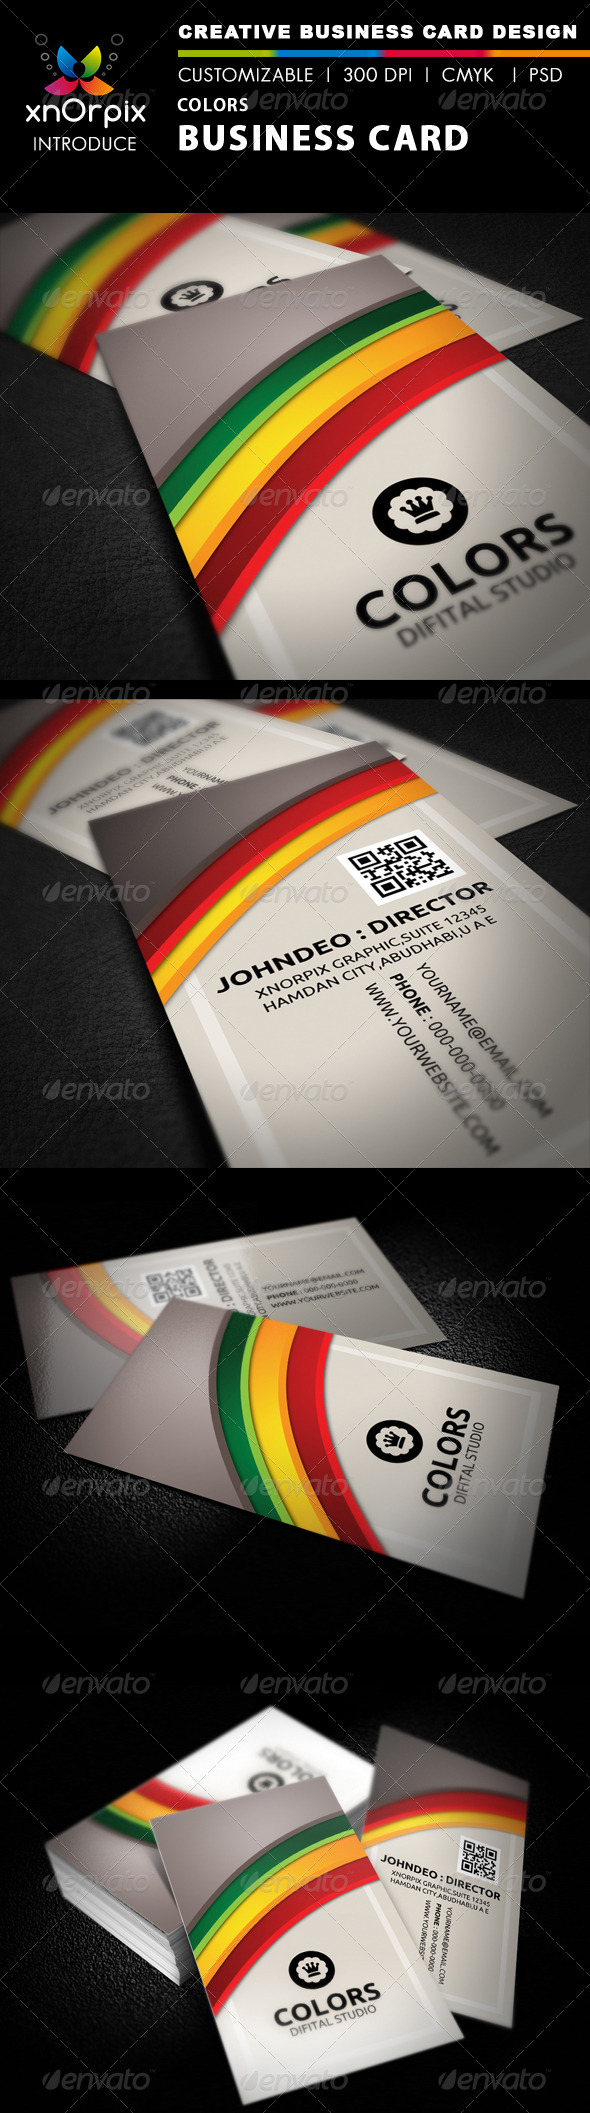 Colors Business Card - Business Cards Print Templates